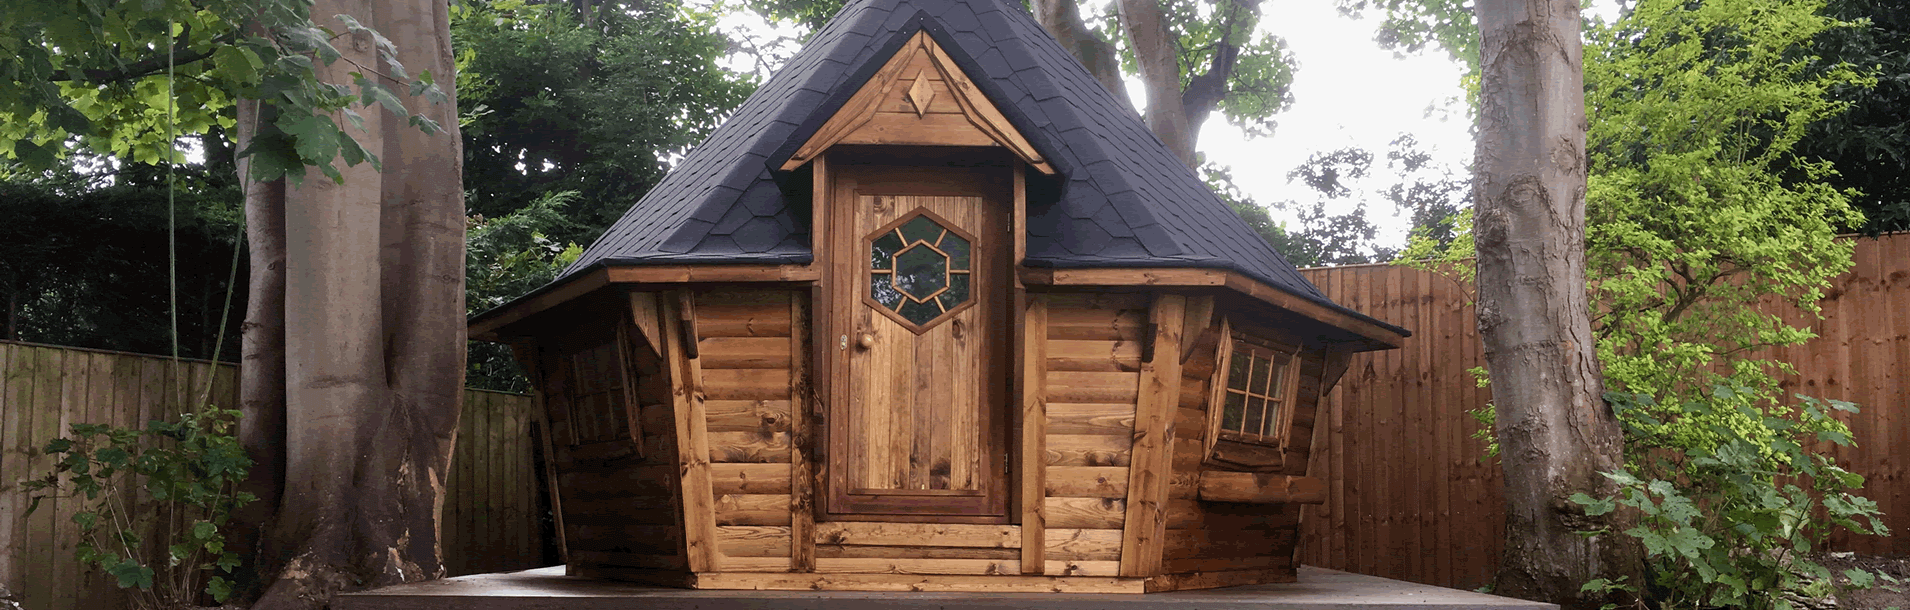 10m Sloping Wall Barbecue Cabin from Carr Bank Garden Centre